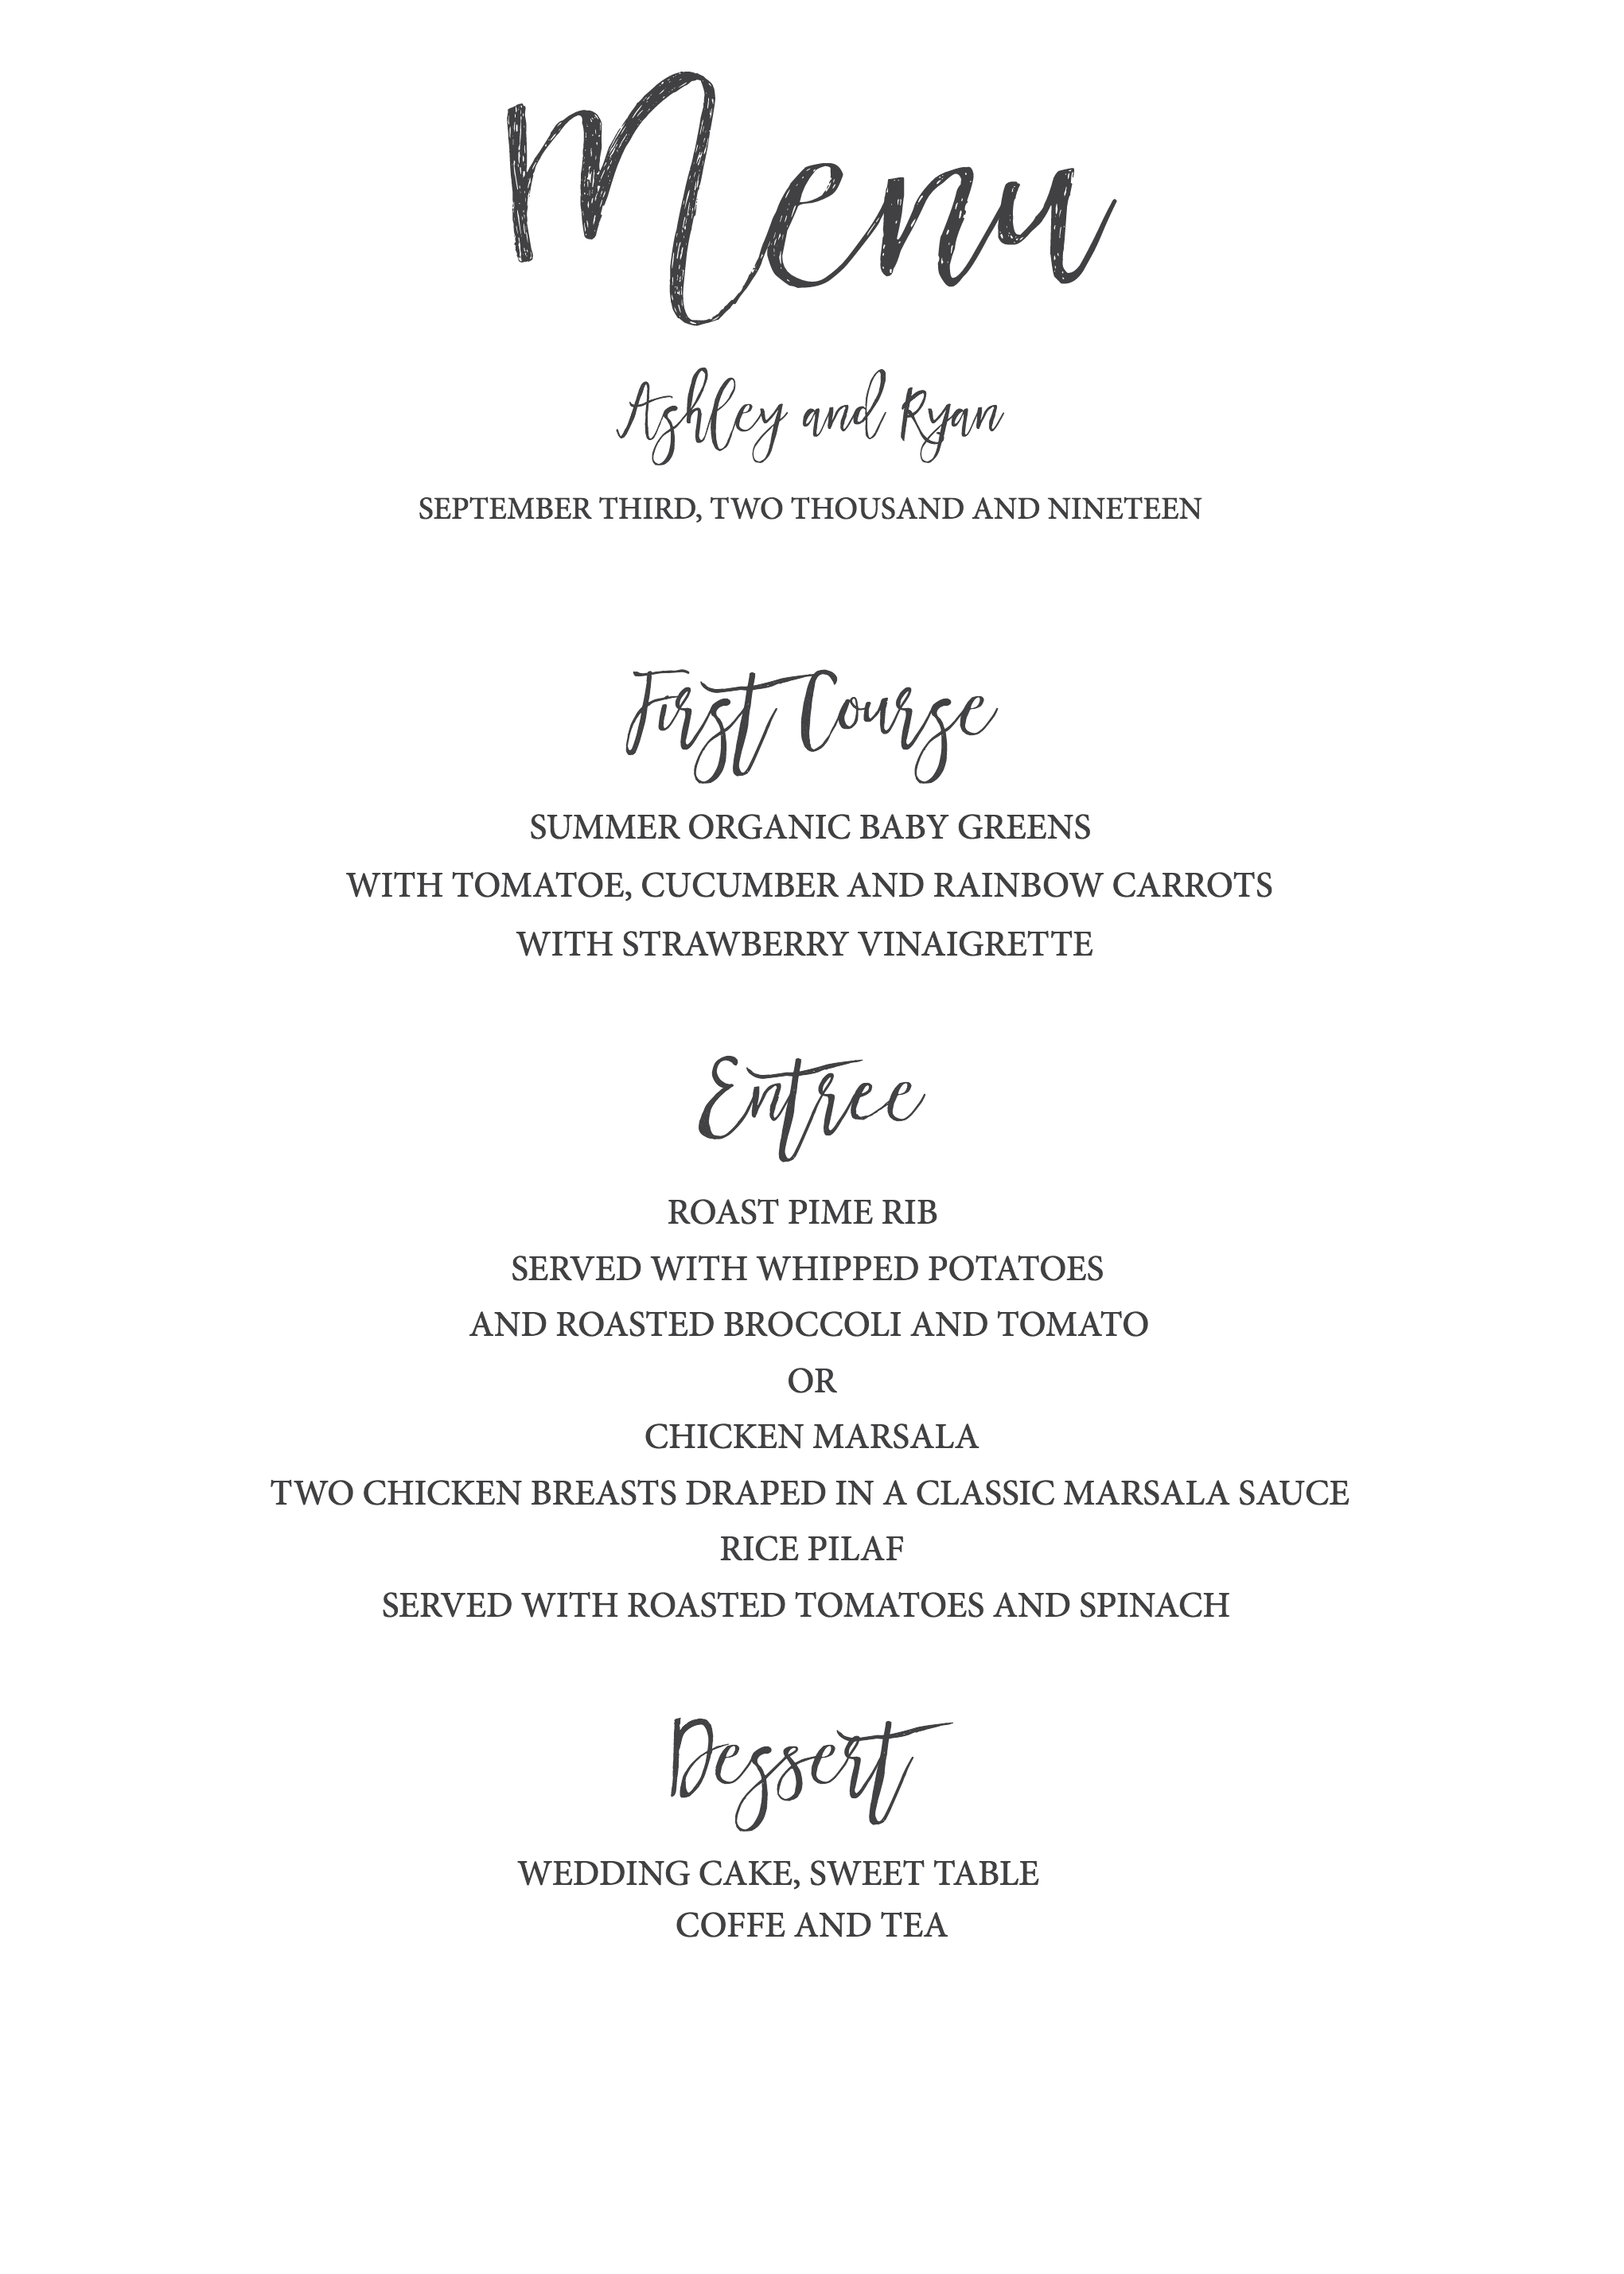 Timeless And Simple Wedding Invitation   Freebies & Free Printables - Free Printable Wedding Menu Card Templates